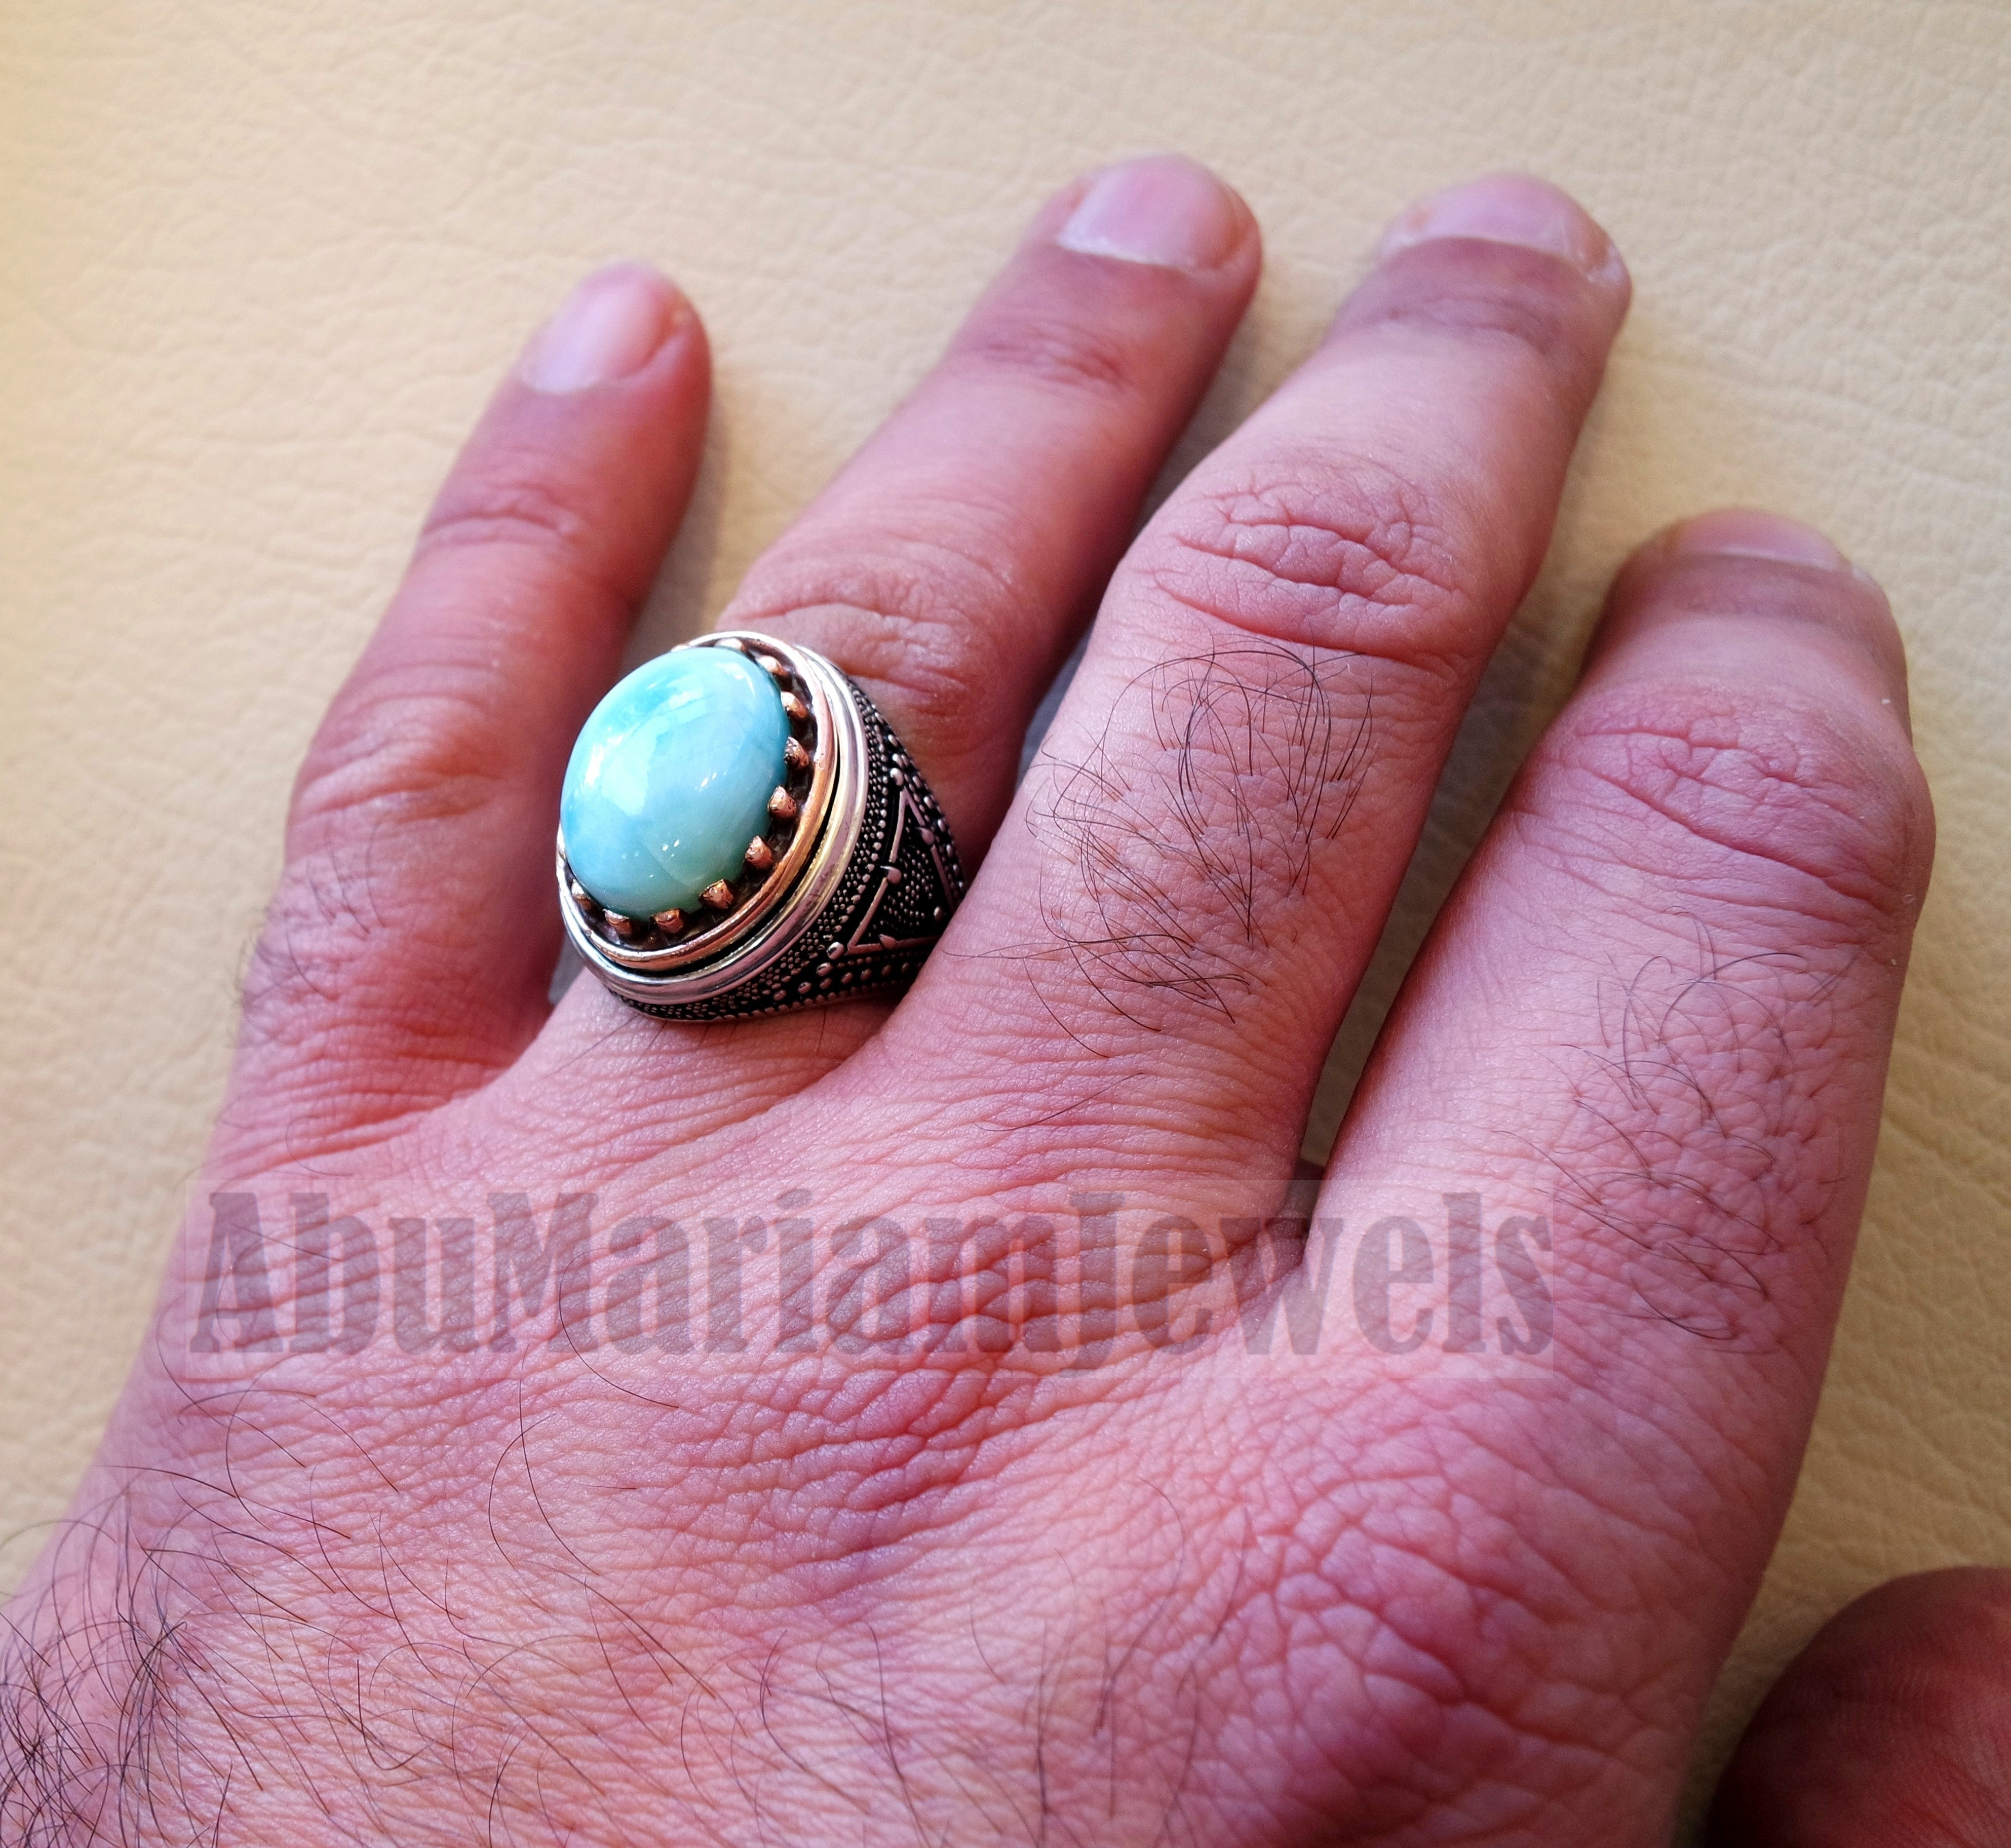 Dominican larimar blue natural stone ring sterling silver 925 and bronze frame men jewelry all sizes gem high quality middle eastern style